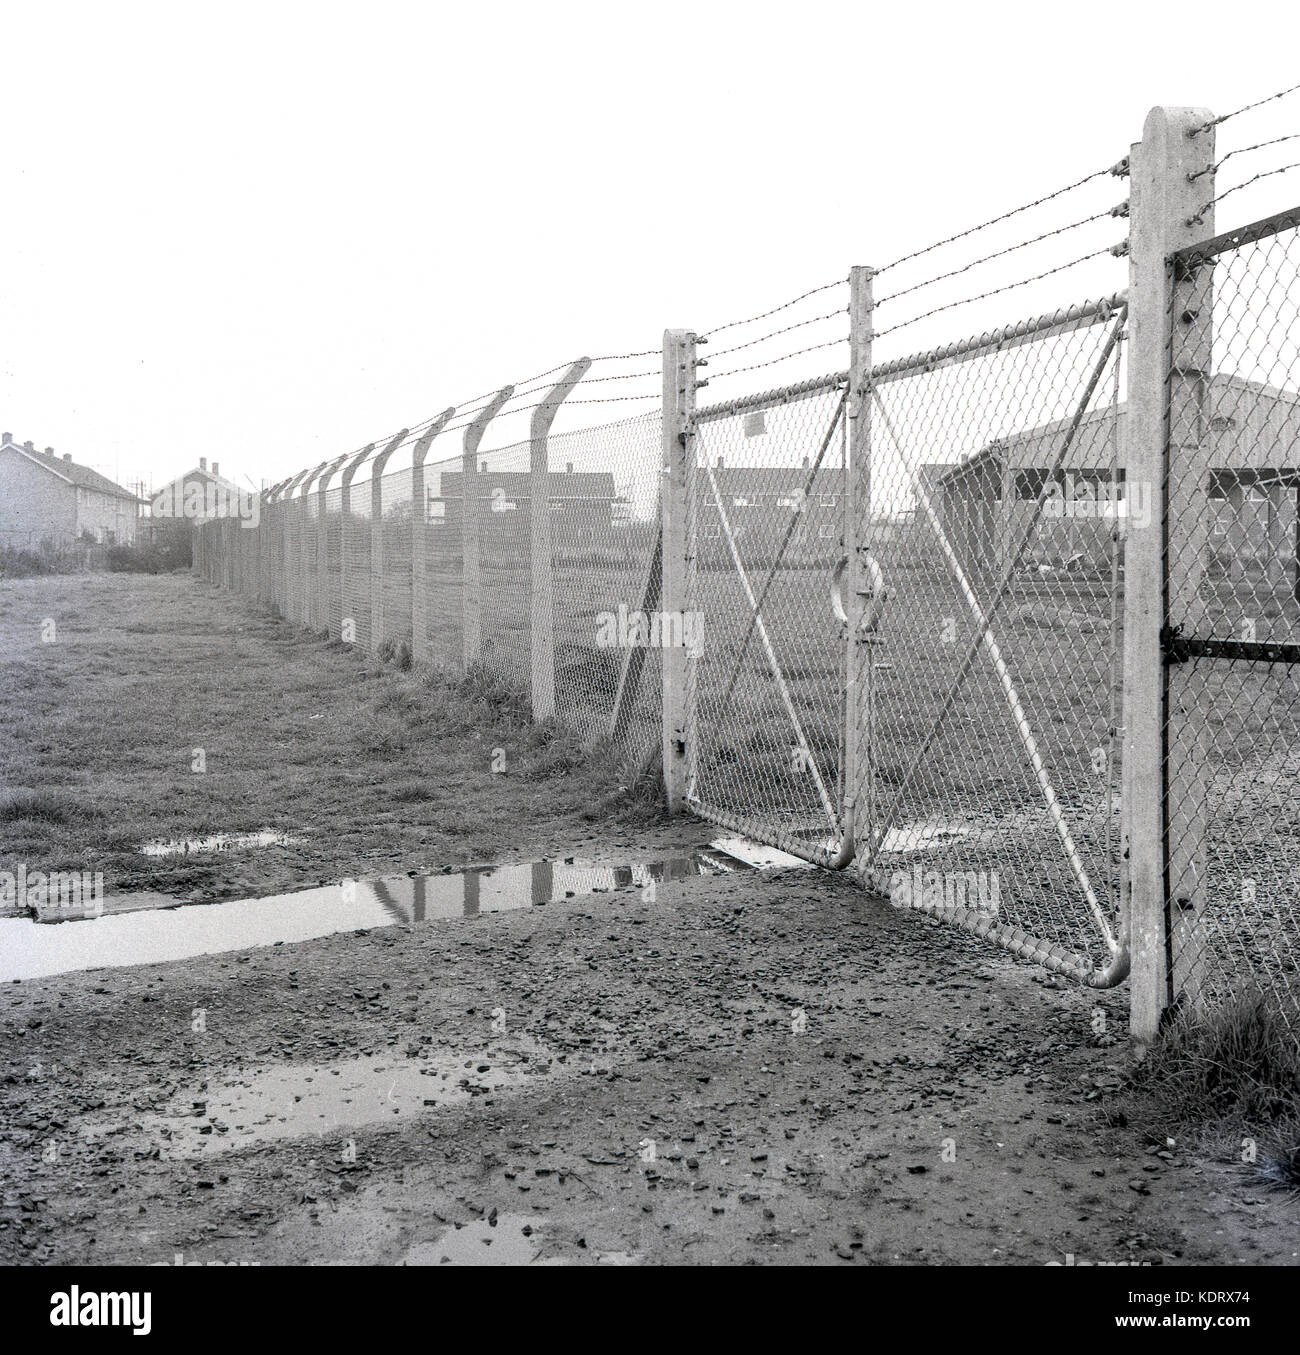 Top Of Security Fence Stock Photos & Top Of Security Fence Stock ...